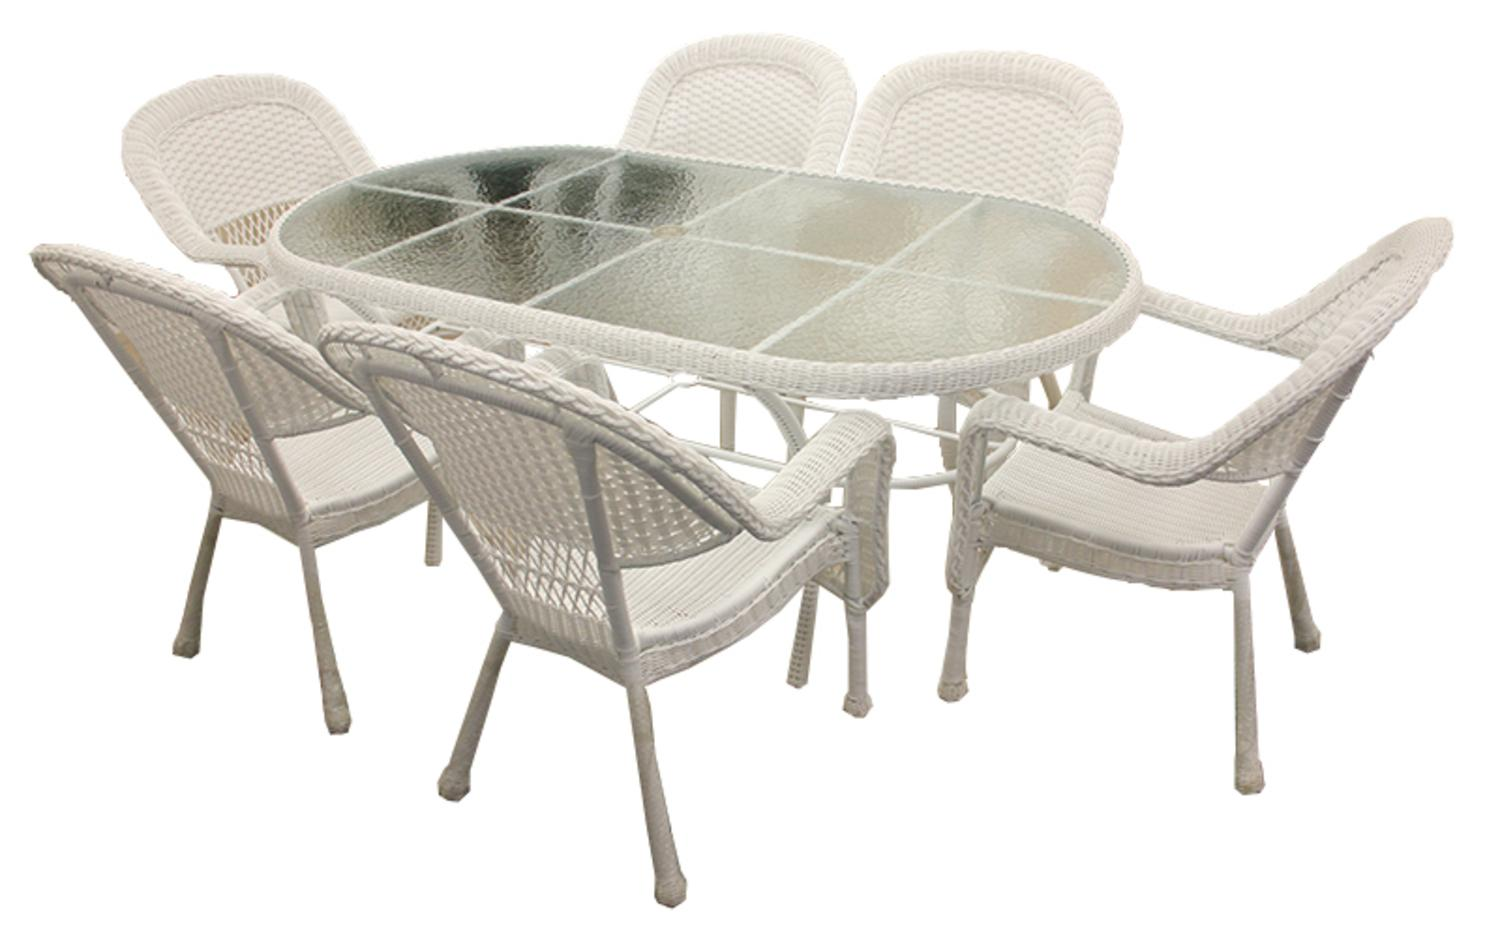 7-Piece White Resin Wicker Patio Dining Room Set 6 Chairs and 1 Dining Table by Northlight